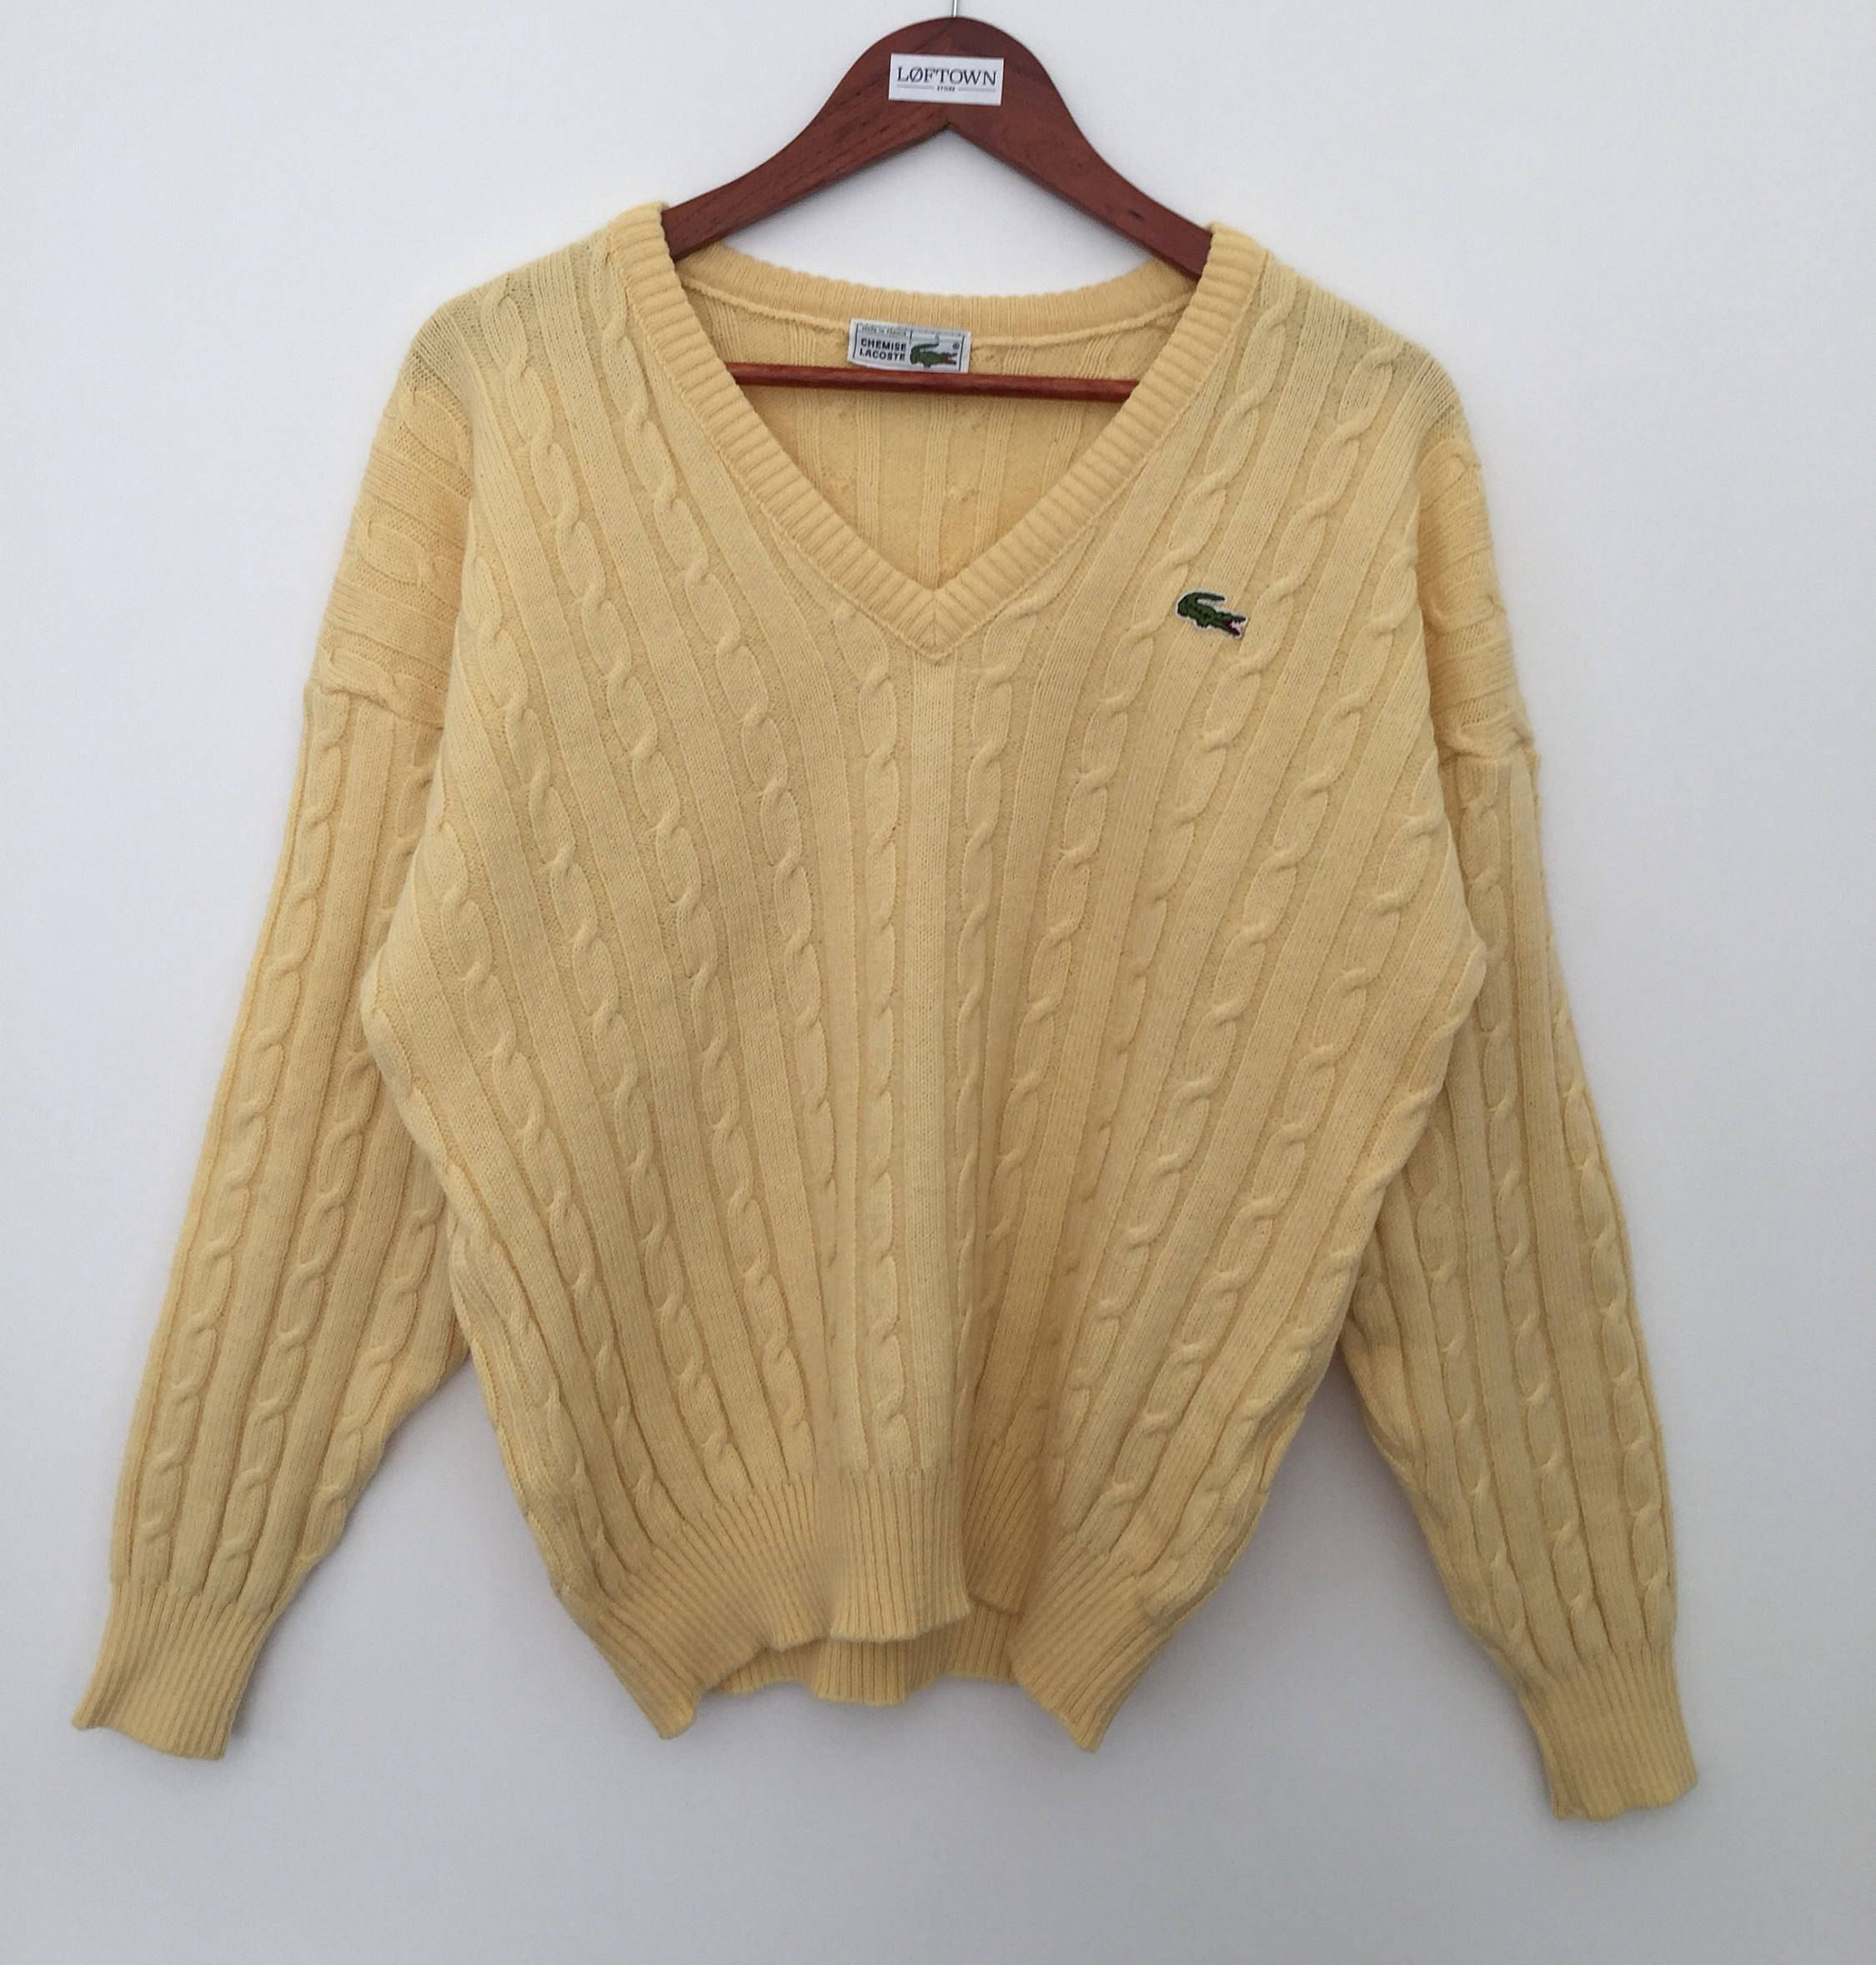 vintage Lacoste / vintage sweater / 80s sweater / yellow sweater ...